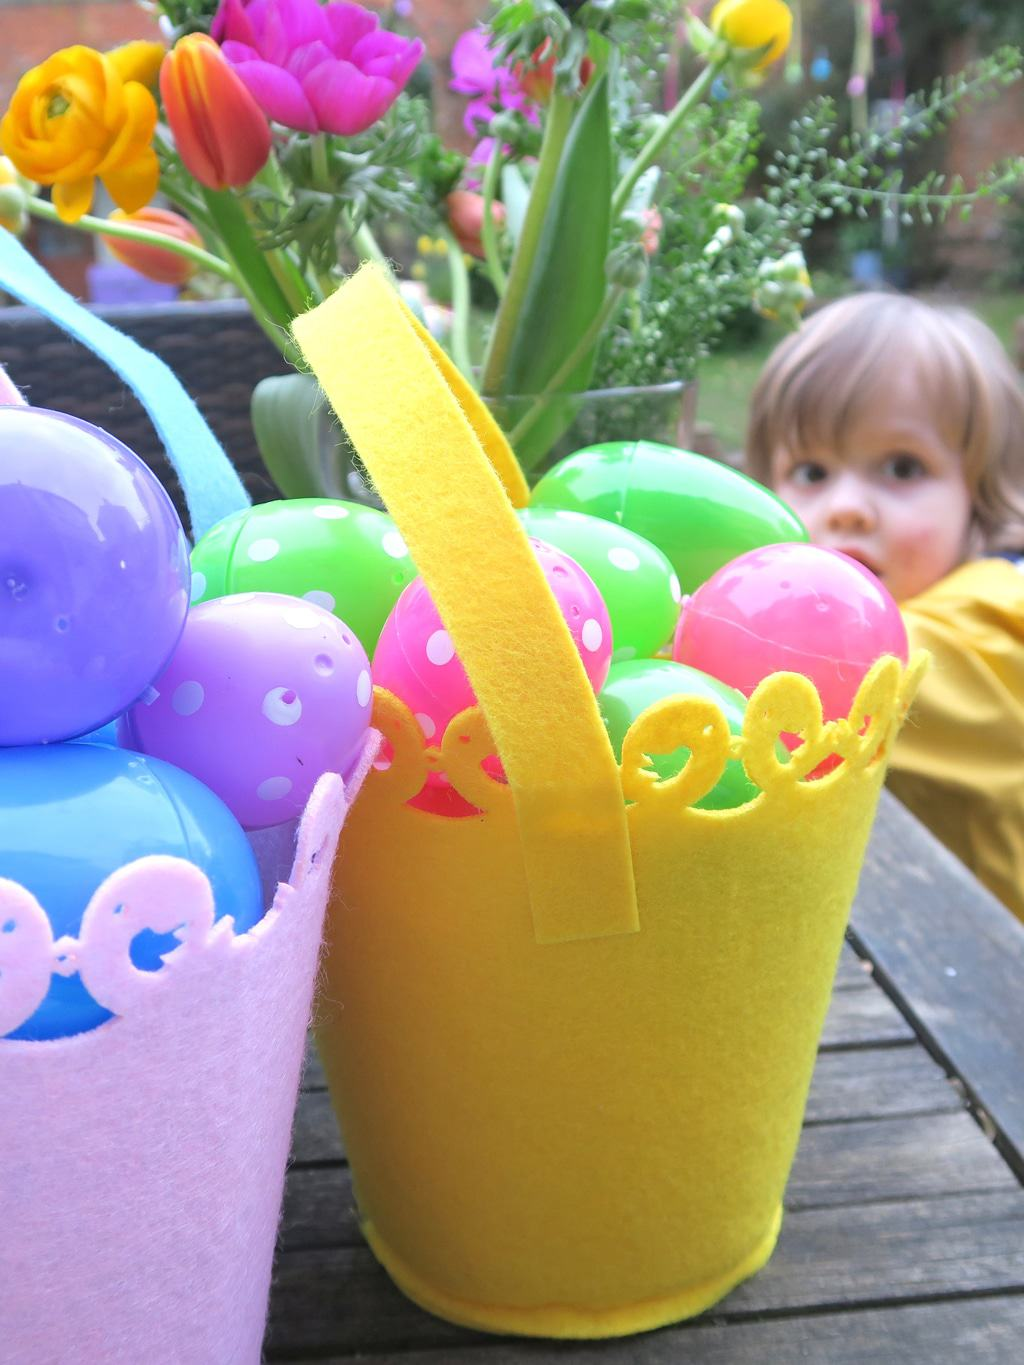 Colourful plastic eggs, ready for the perfect Easter egg hunt